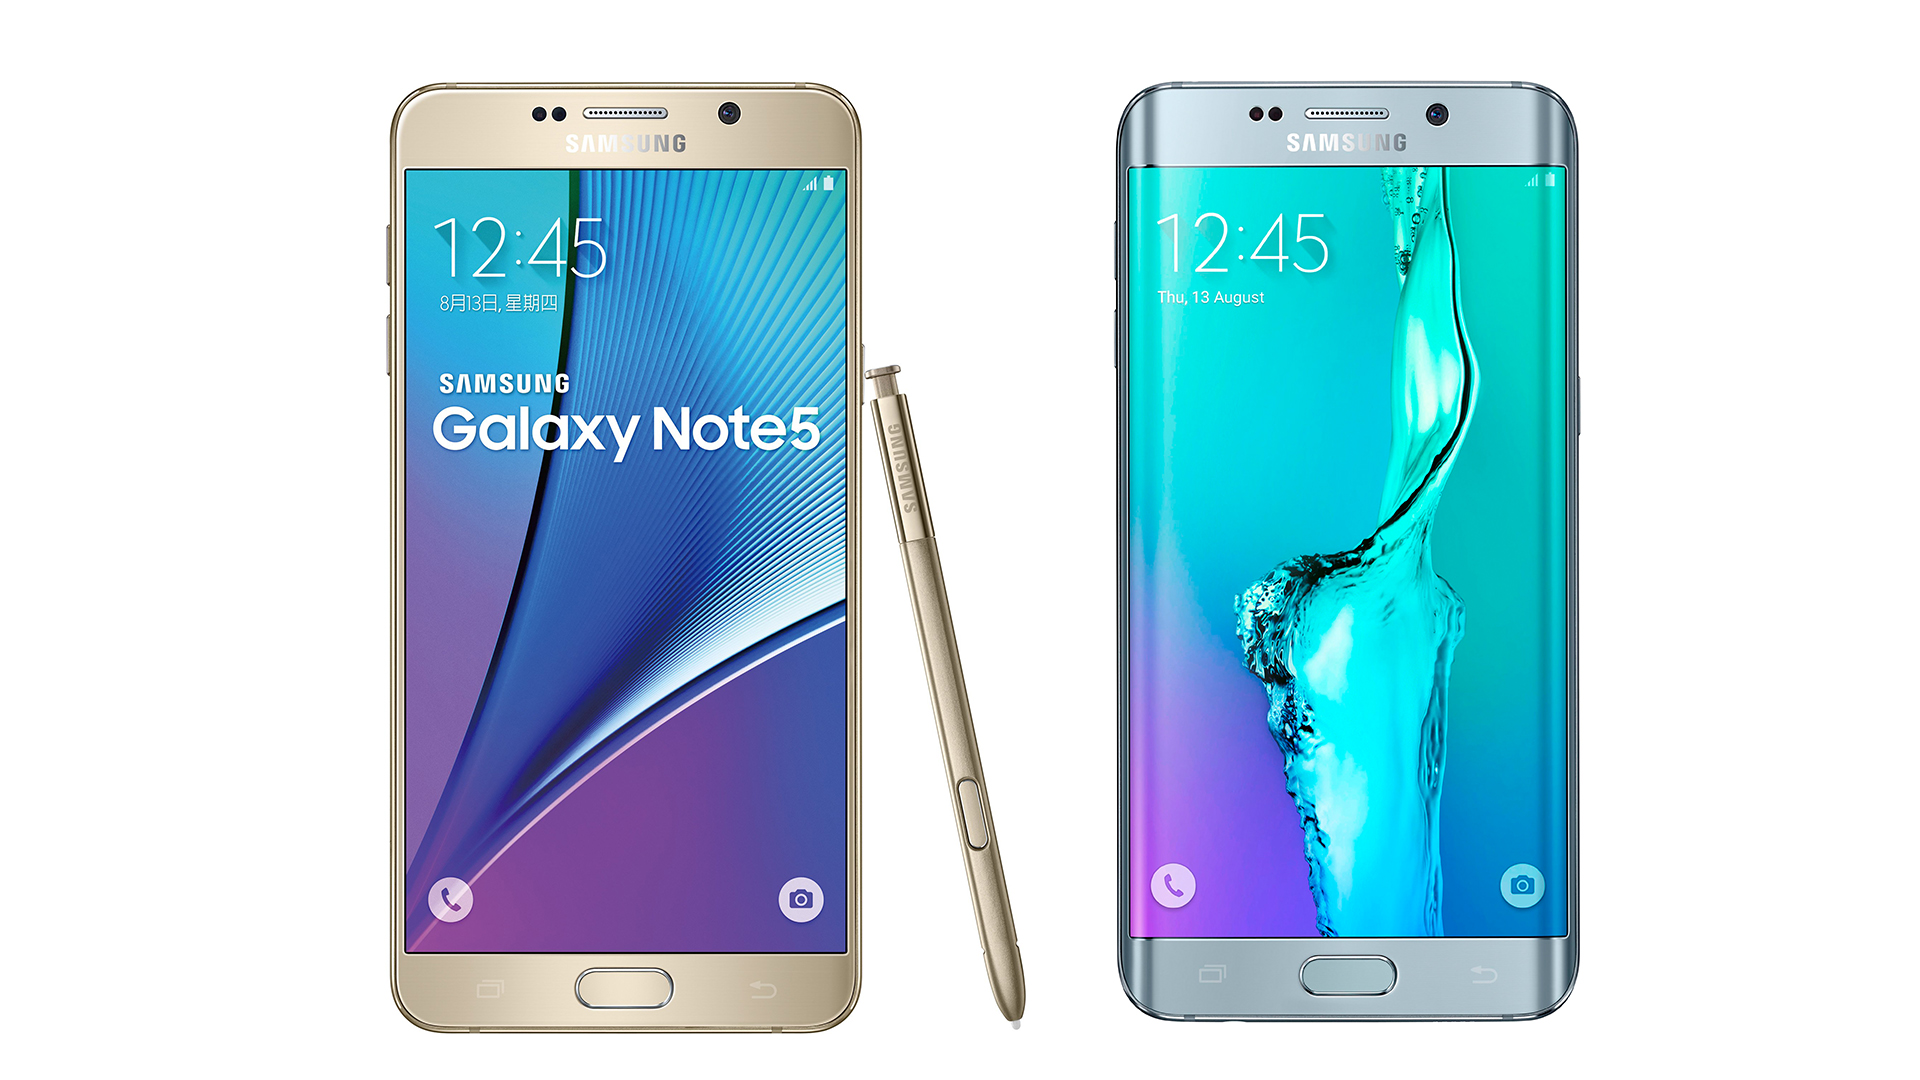 相當抱歉,Samsung GALAXY Note 5 與 GALAXY S6 Edge+ 沒有 128GB 版本